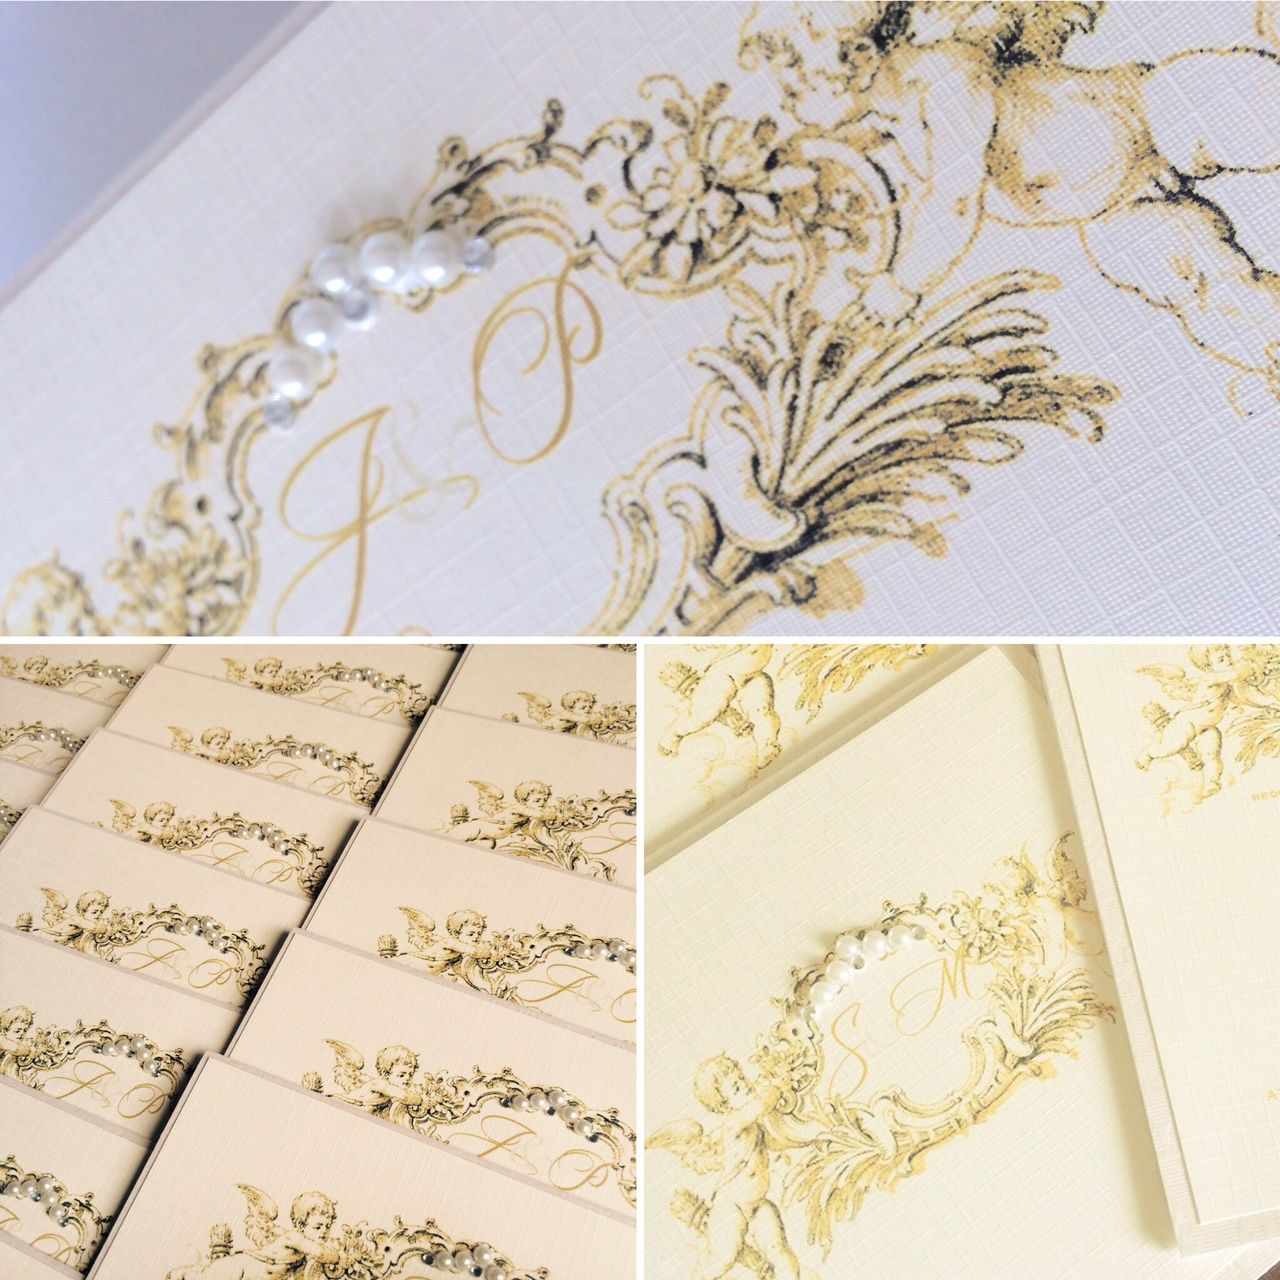 cherub wedding invitations with pearl and diamante detail